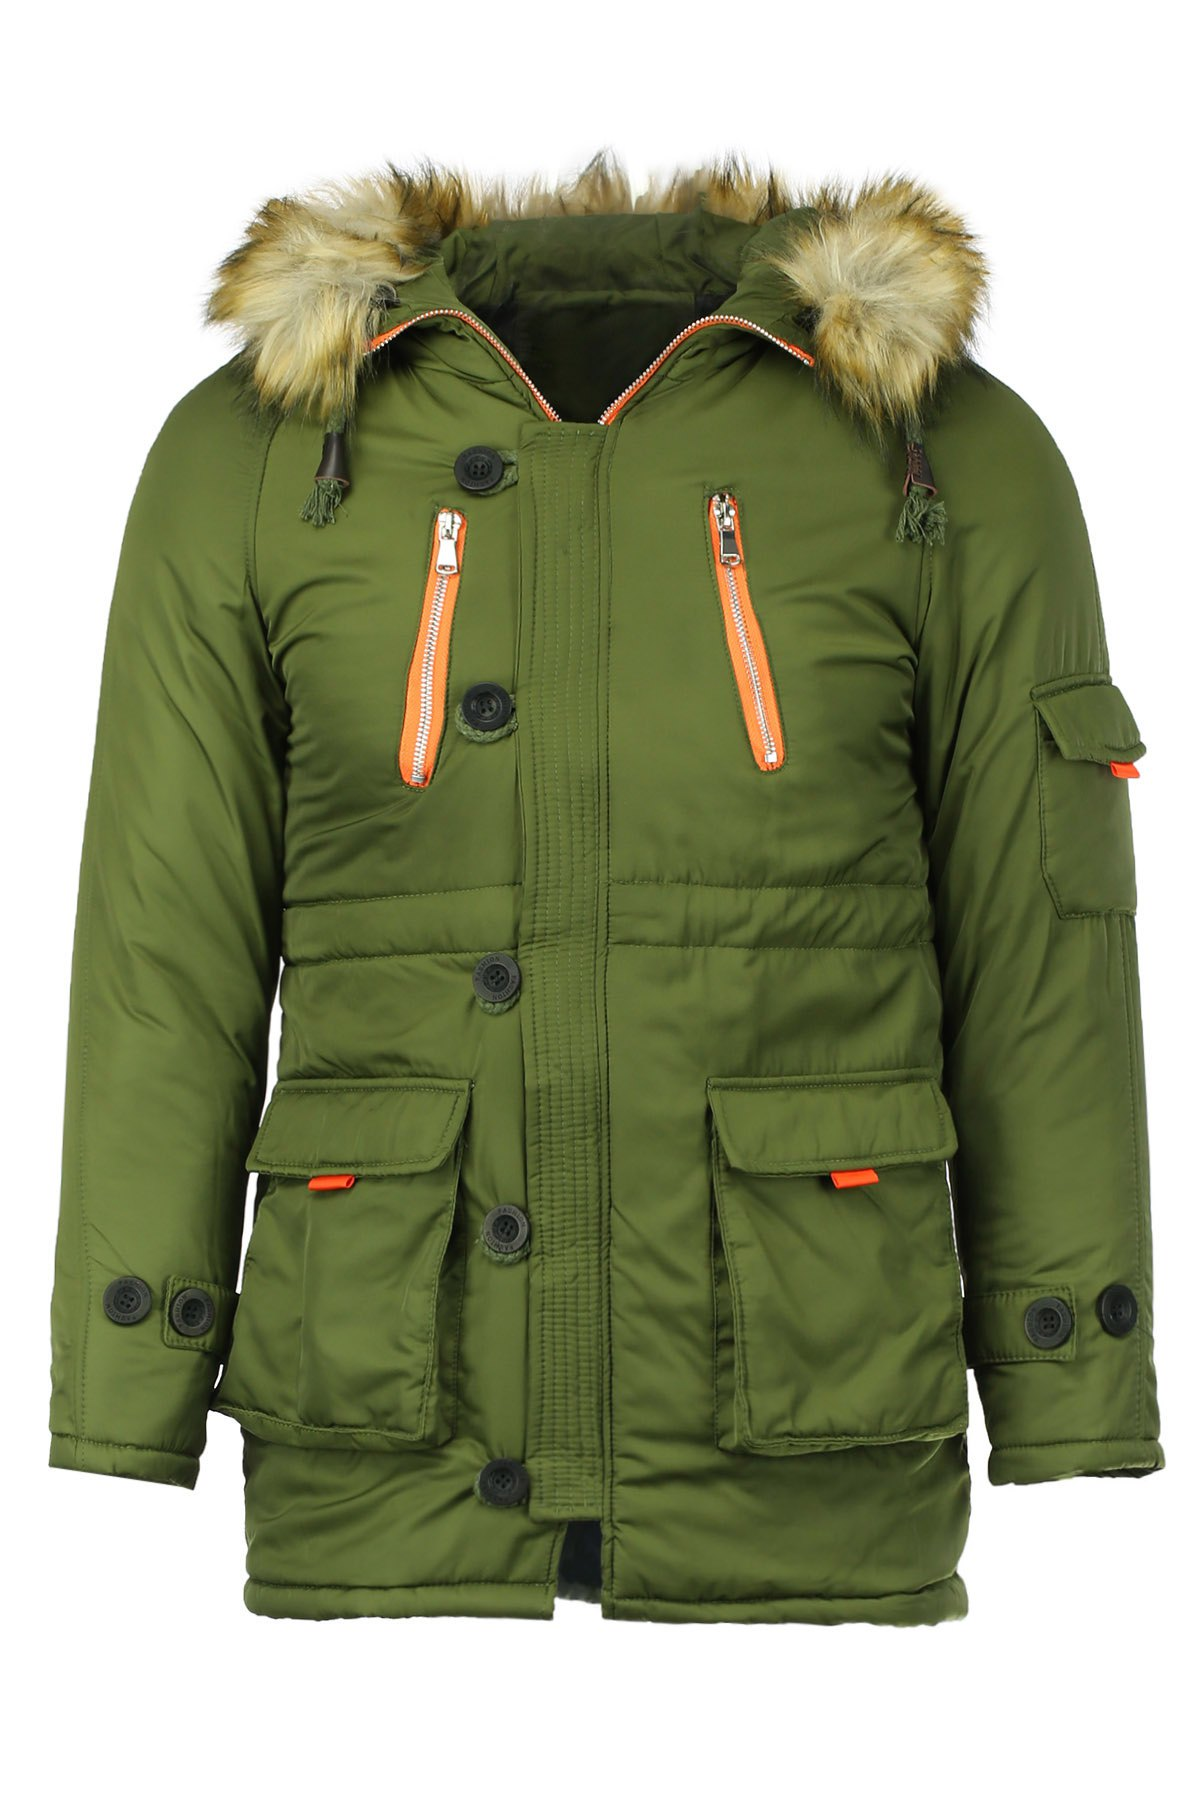 Color Block Multi-Zipper Stereo Patch Pocket Detachable Hooded Long Sleeves Men's Fitted Coat - ARMY GREEN L